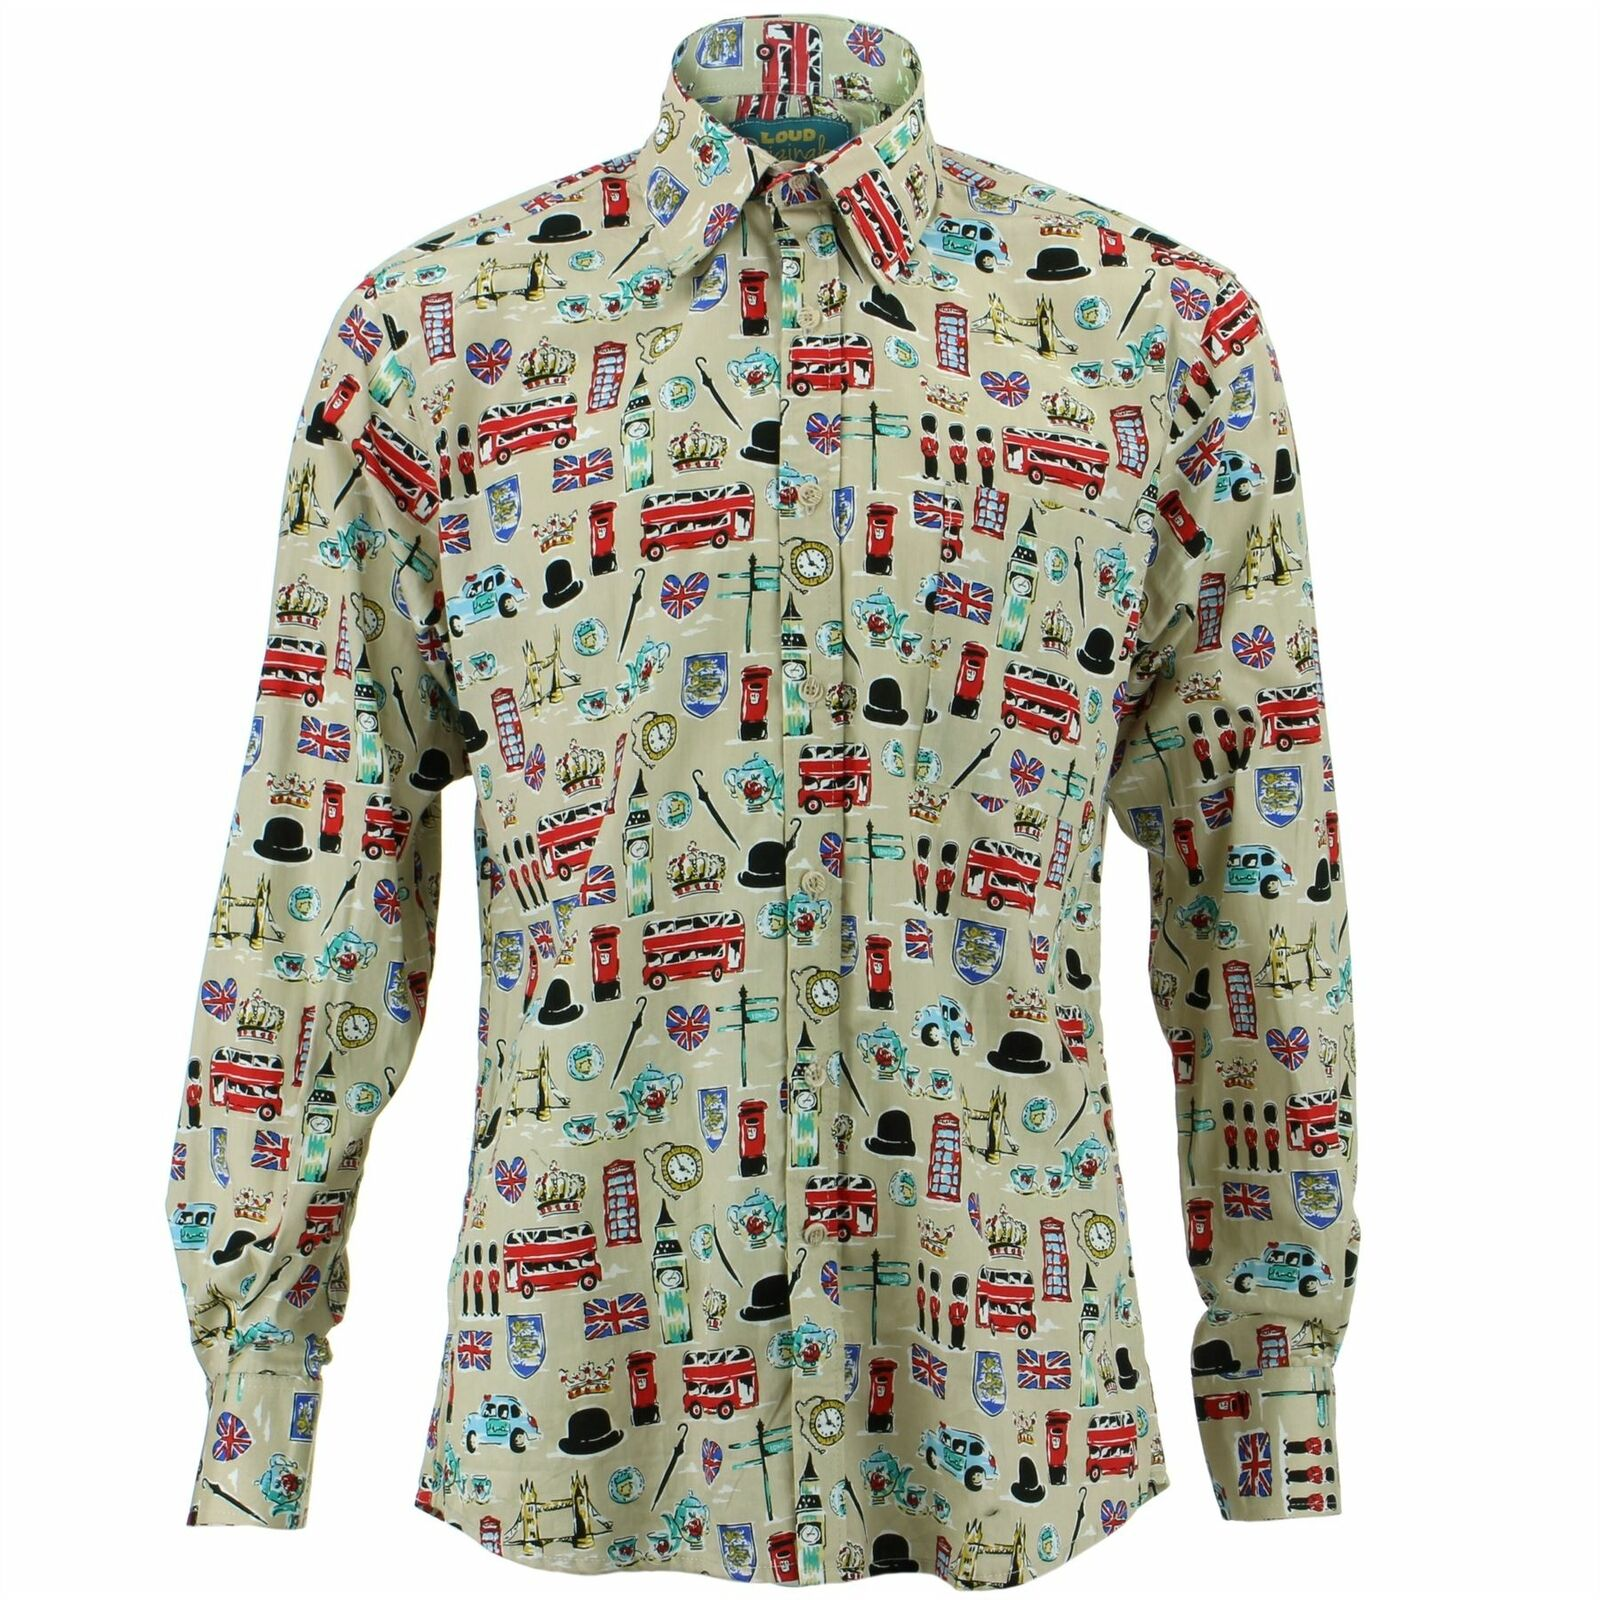 Herren Shirt Loud Originals Regular Fit London Beige Retro Psychedelic Kostüm | Räumungsverkauf